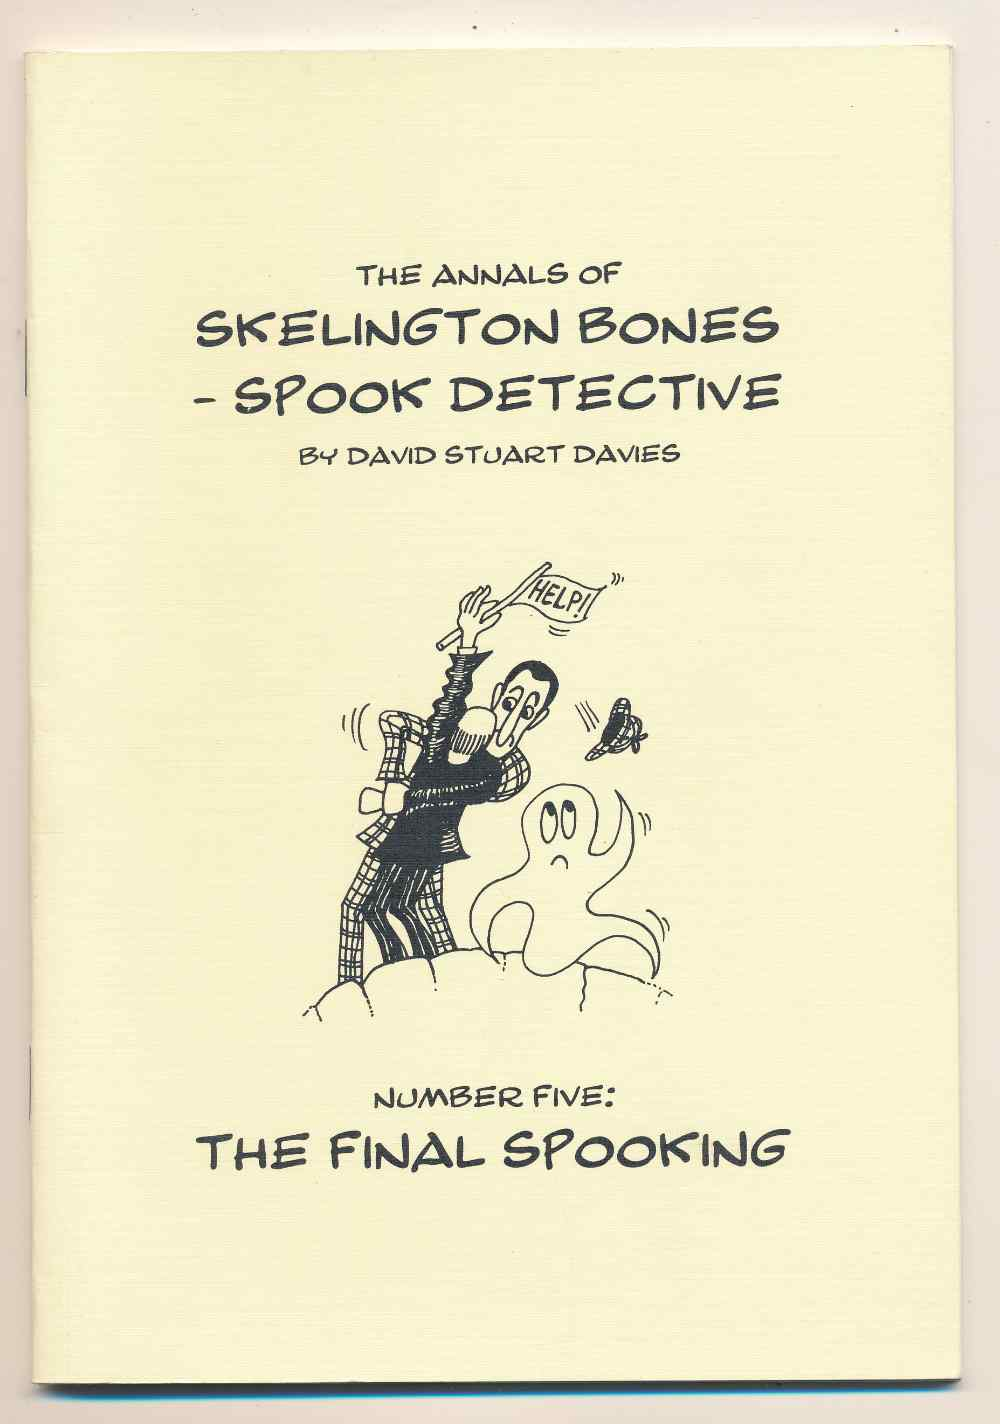 The annals of Skelington Bones - spook detective. Number five, The final spooking